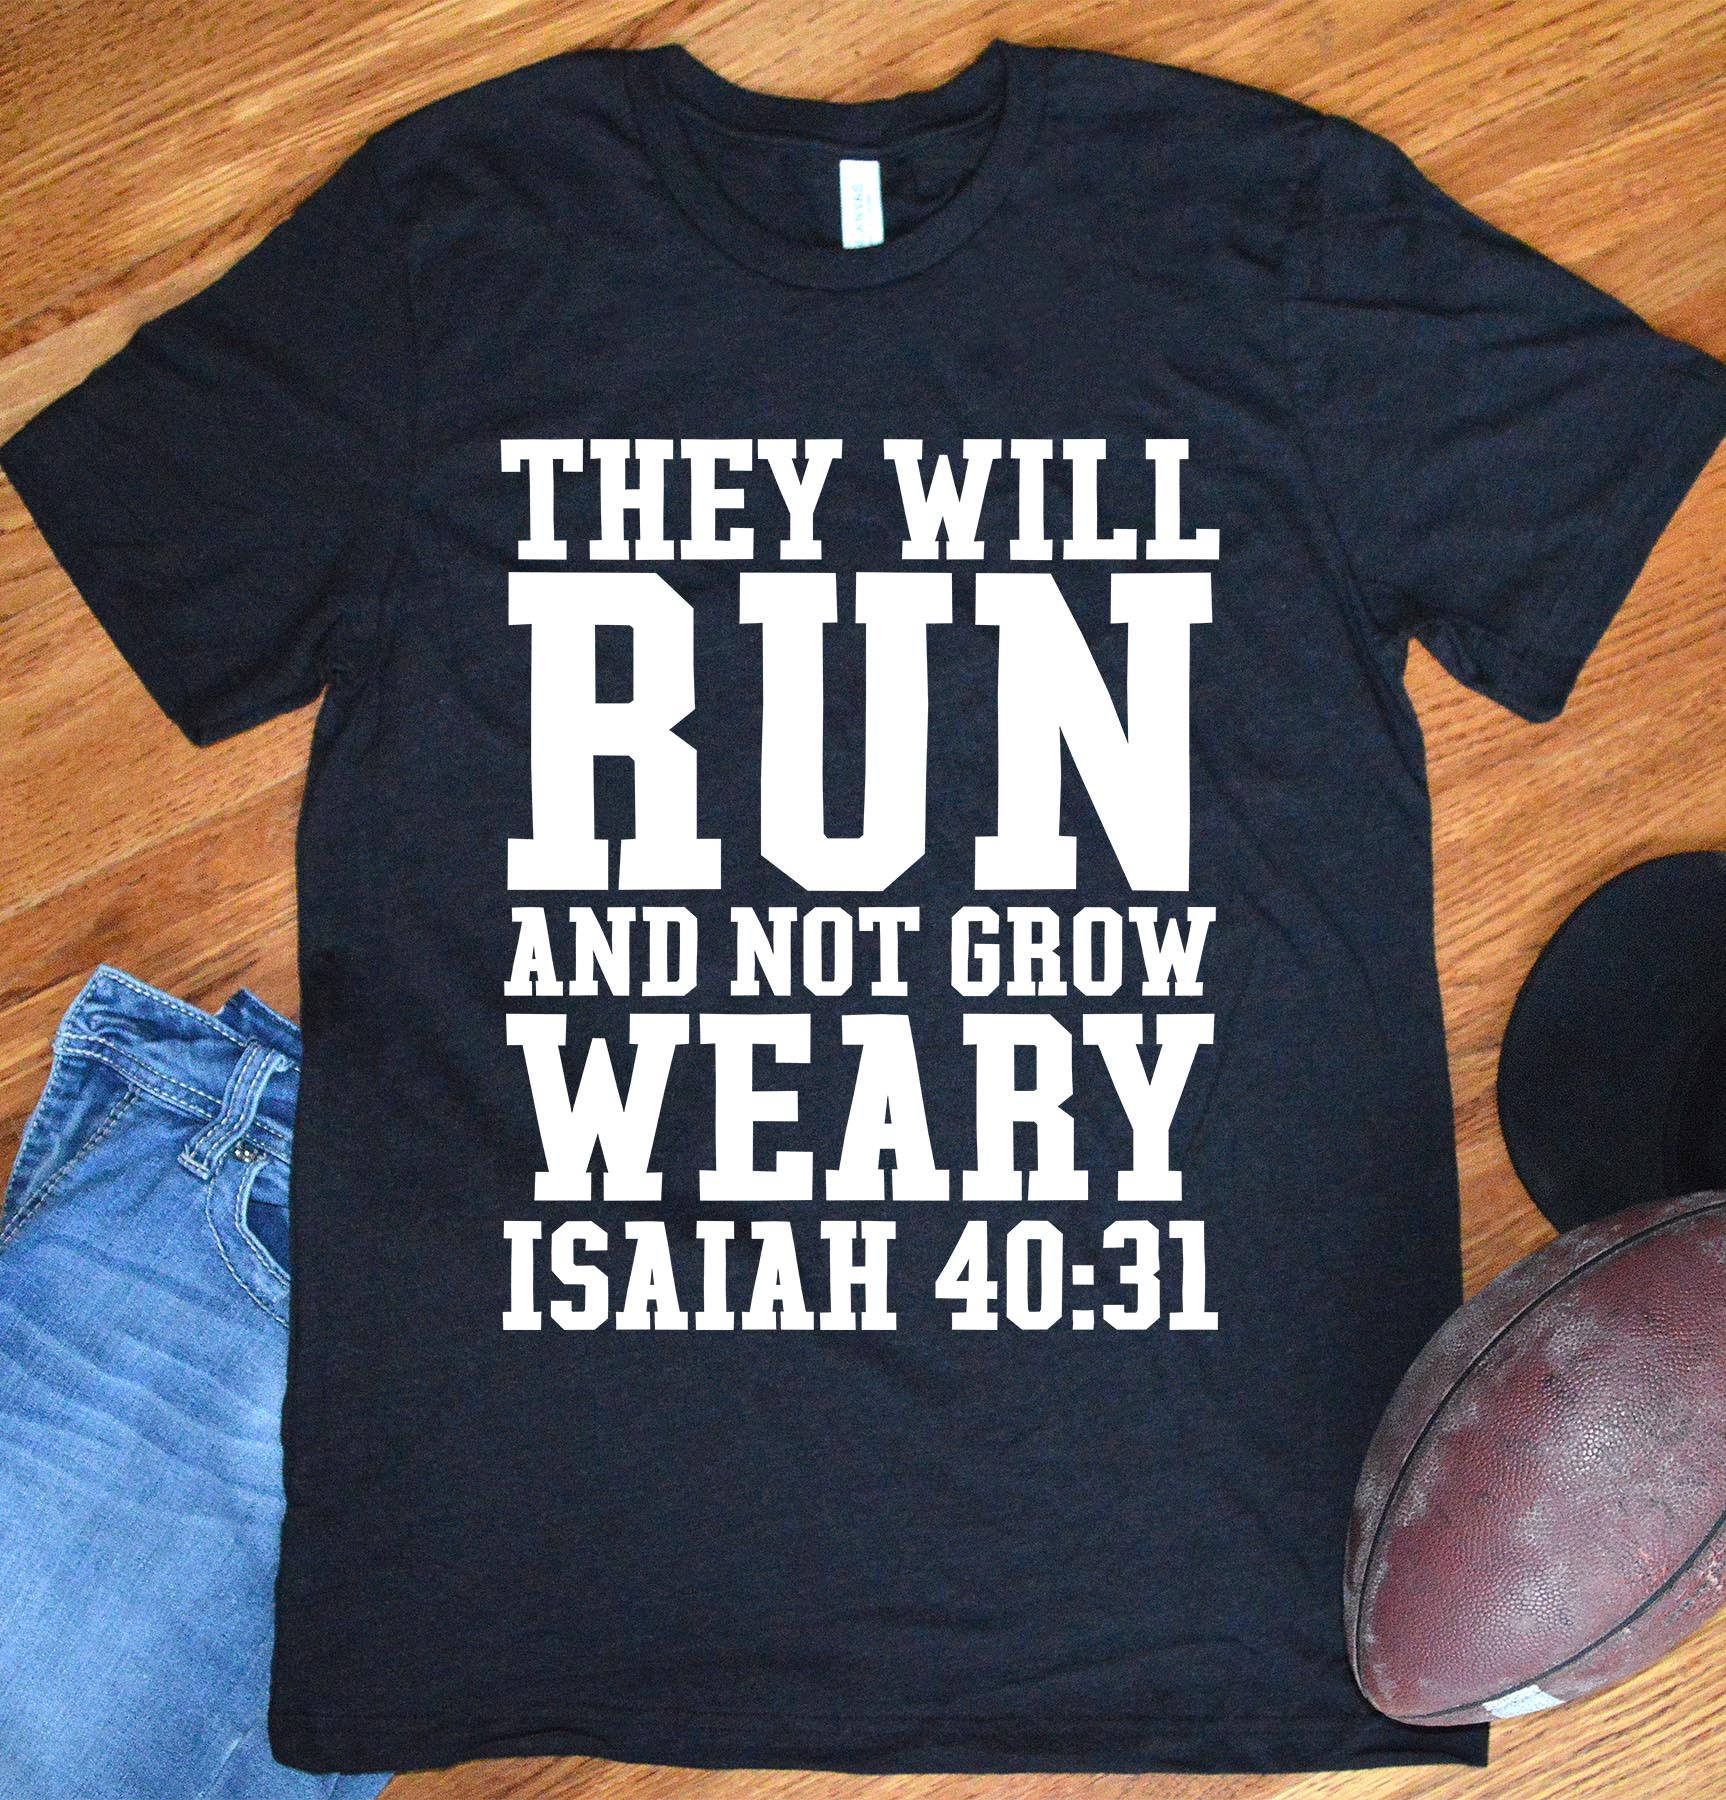 Christian Shirts For Men Isaiah 4031 They Will Run And Not Etsy